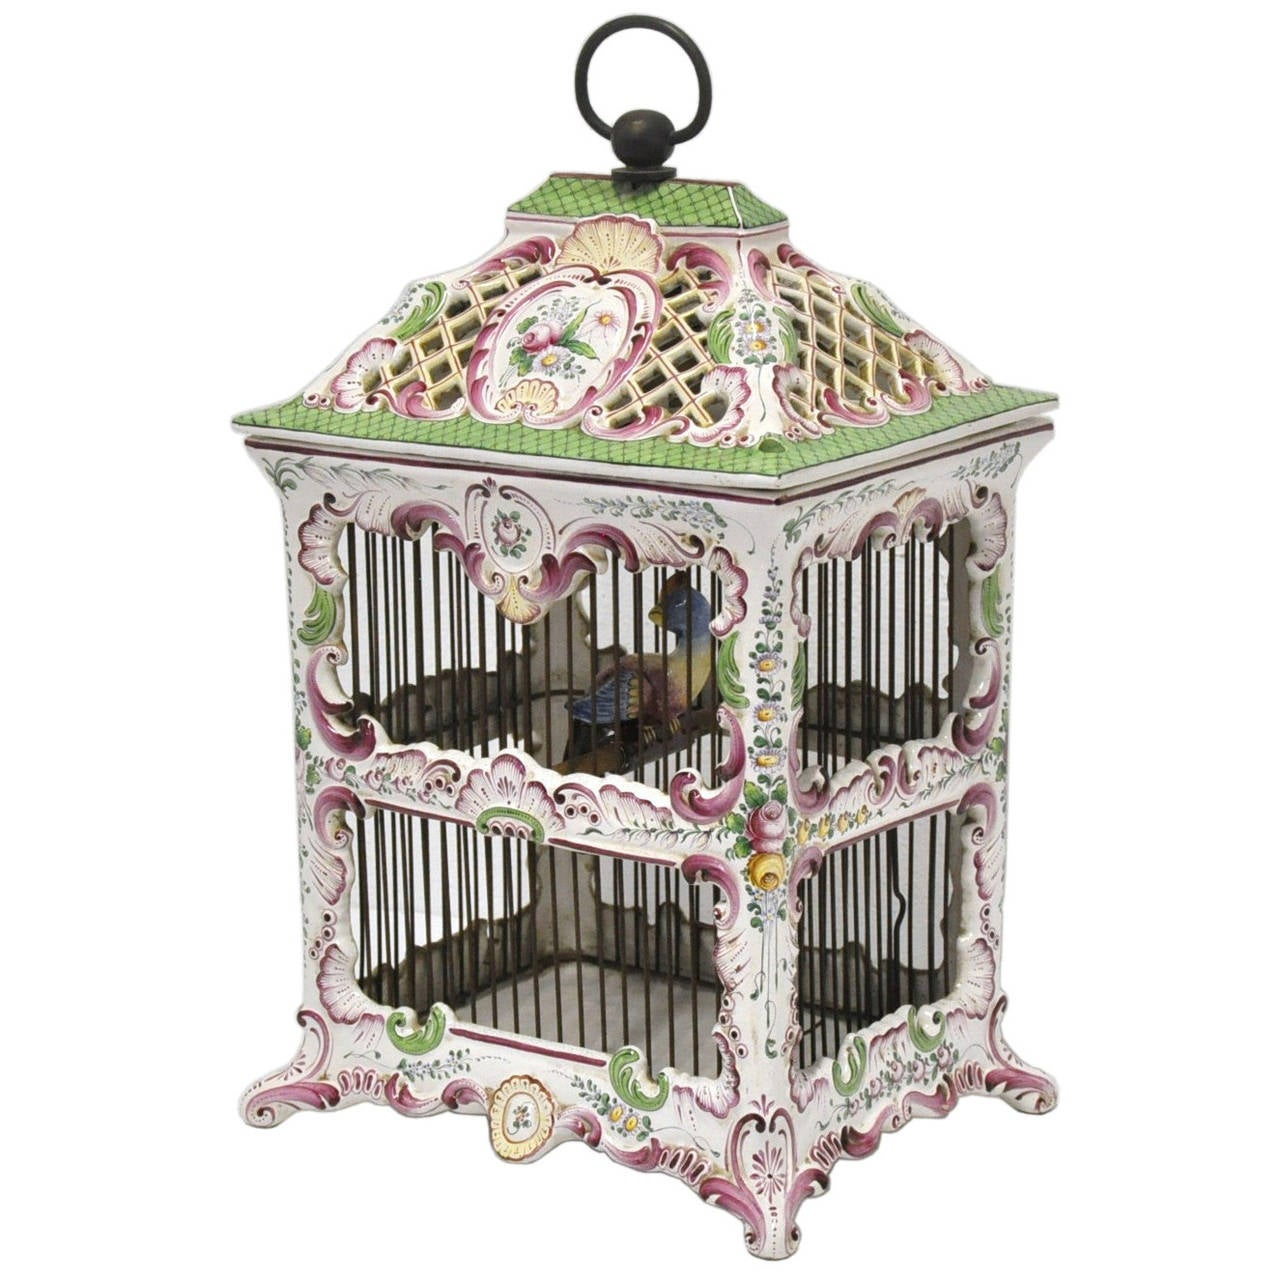 19th Century, French, Hand-Painted Porcelain Birdcage Lamp